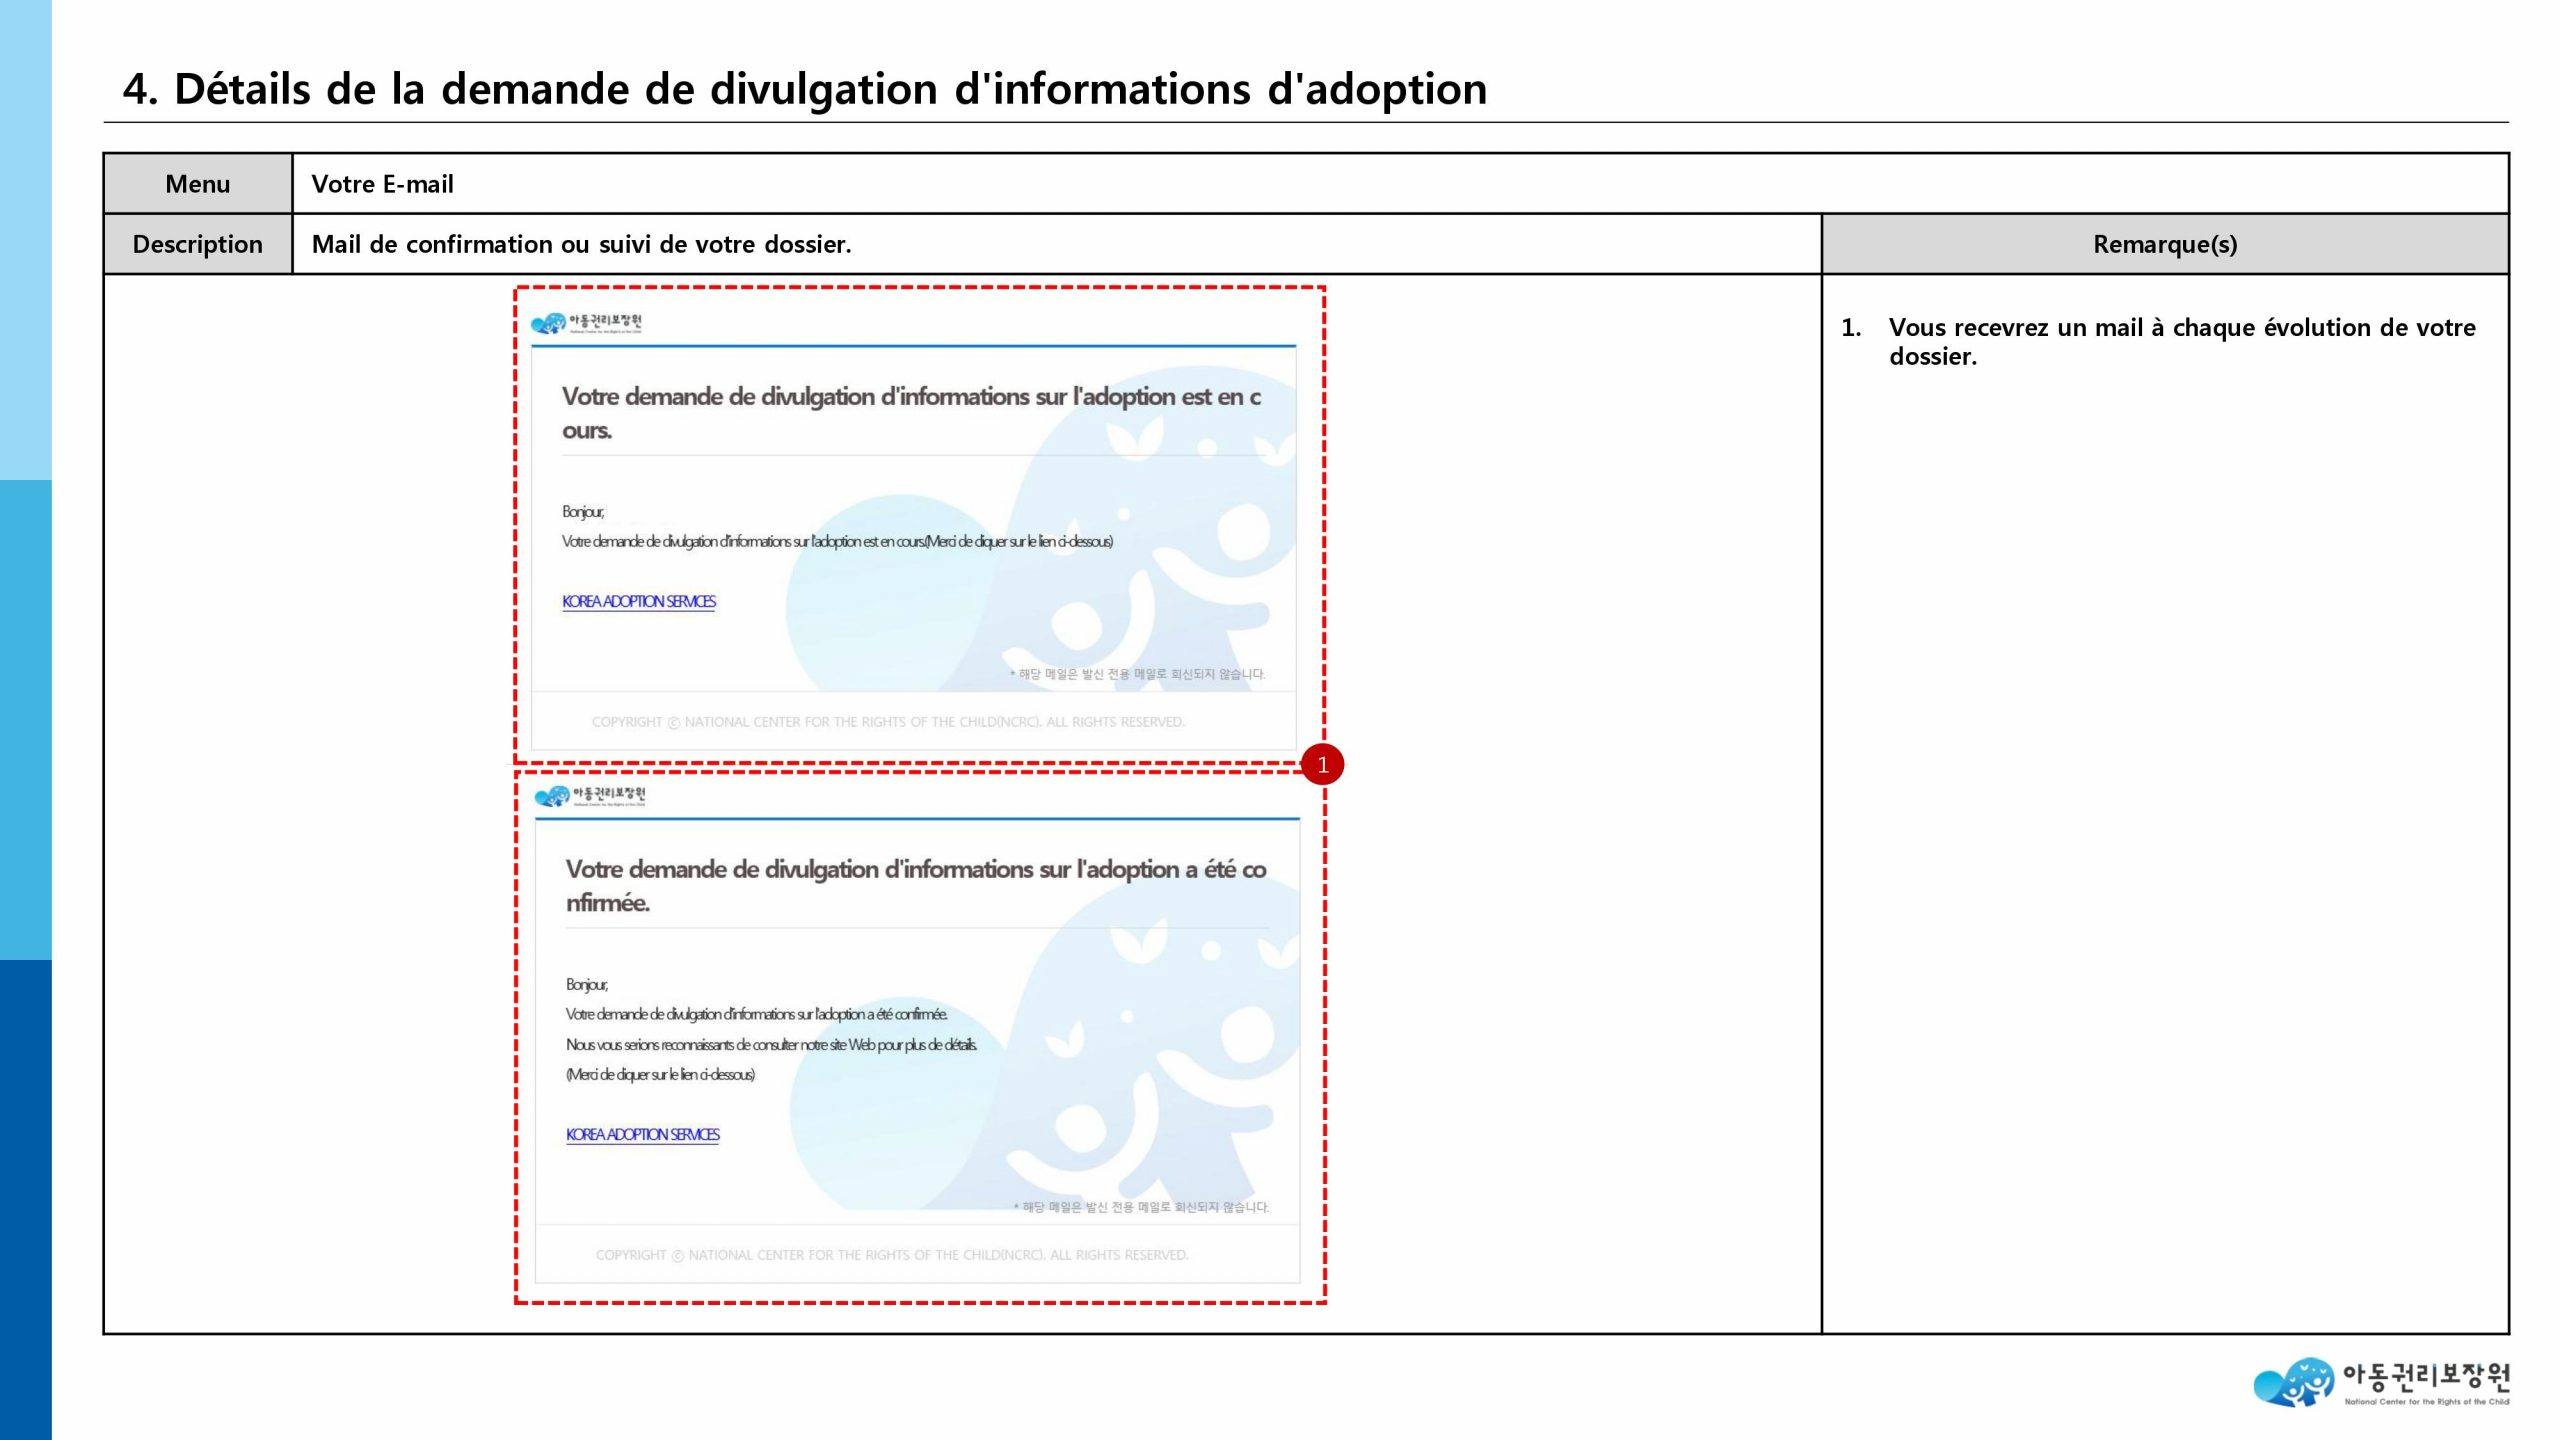 recherche biologique du NCRC (National Center for the Rights of the Child)